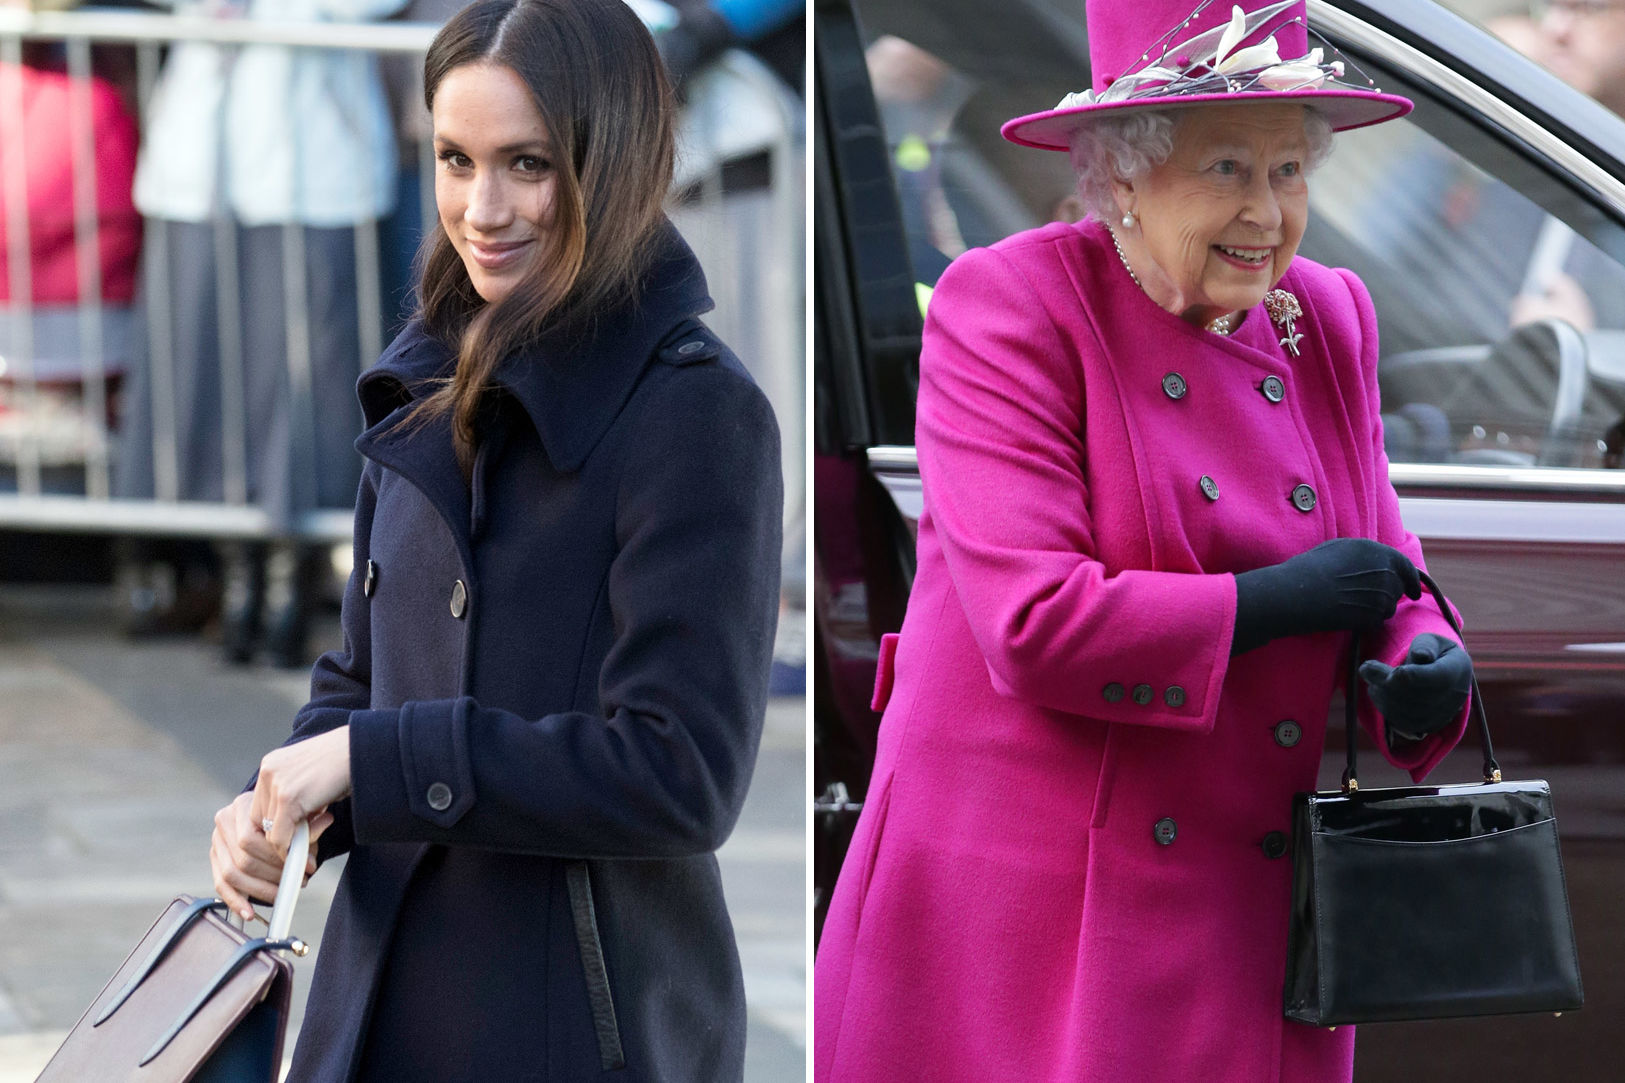 Meghan Markle Takes Purse Cues From Queen Elizabeth! What's Inside Their Handbags?